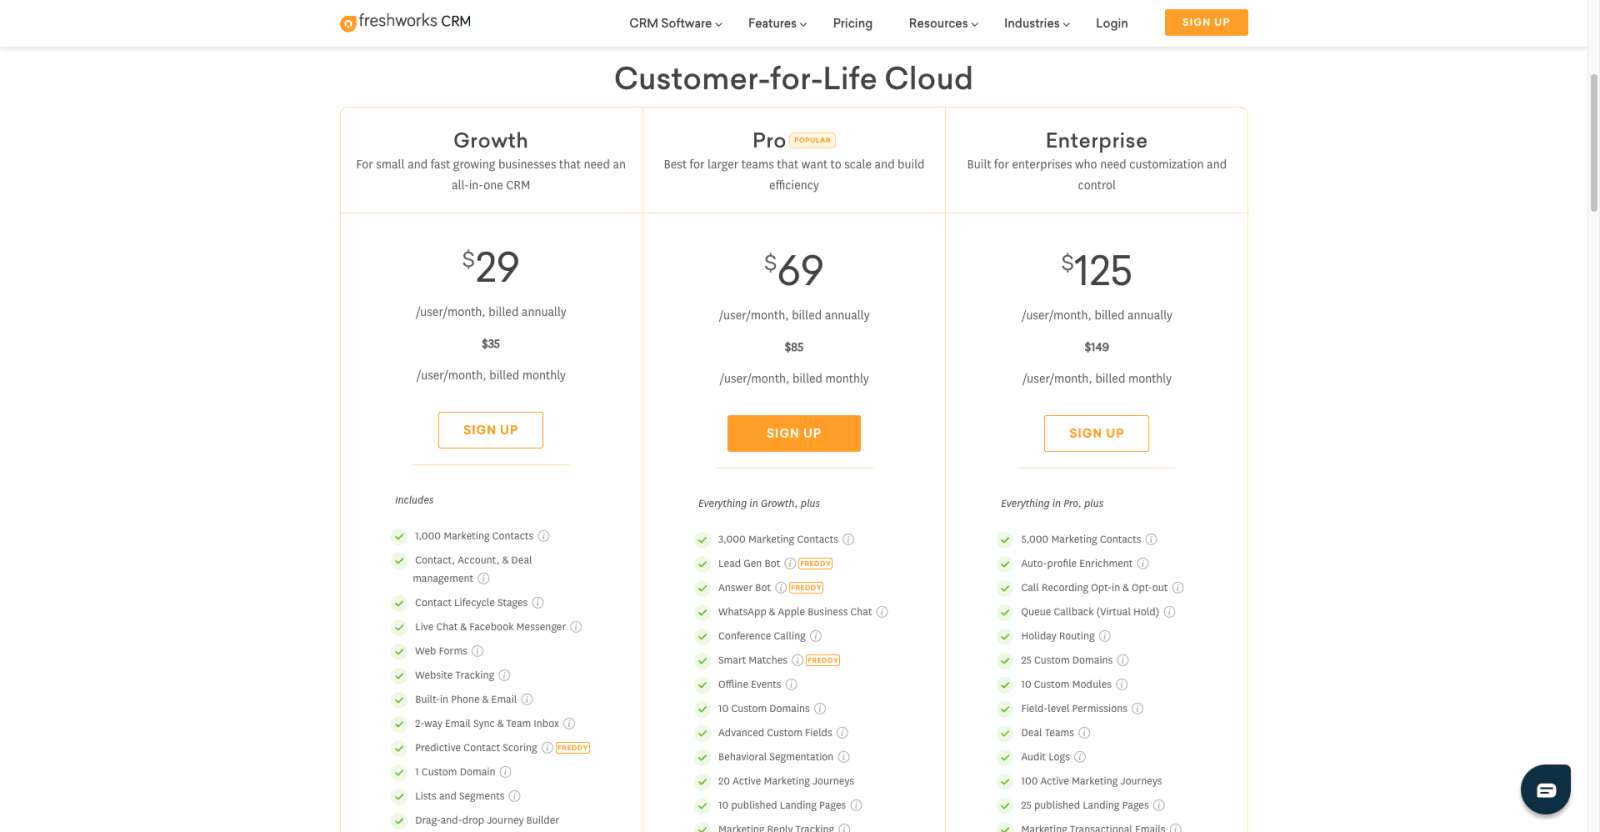 Freshworks CRM Review, Pricing & Features   SoftwarePundit